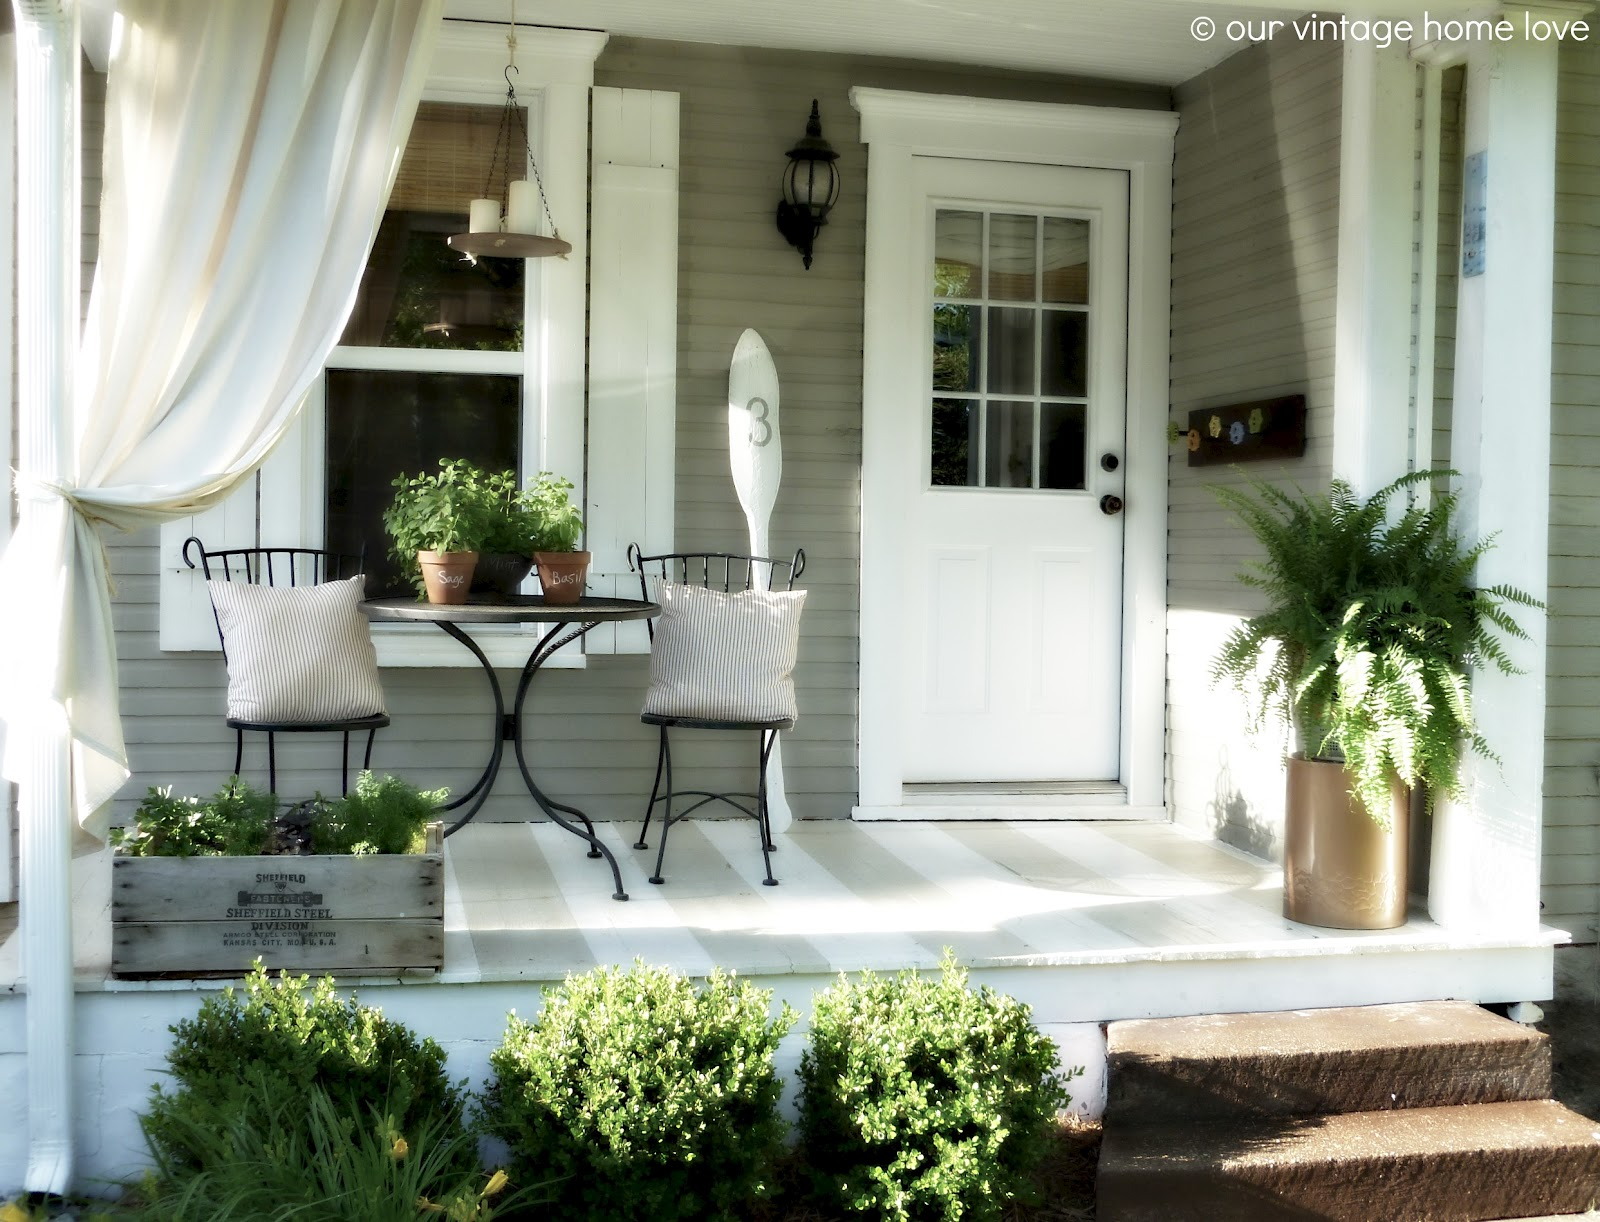 Front porch decorating ideas dream house experience for Patio deck decorating ideas